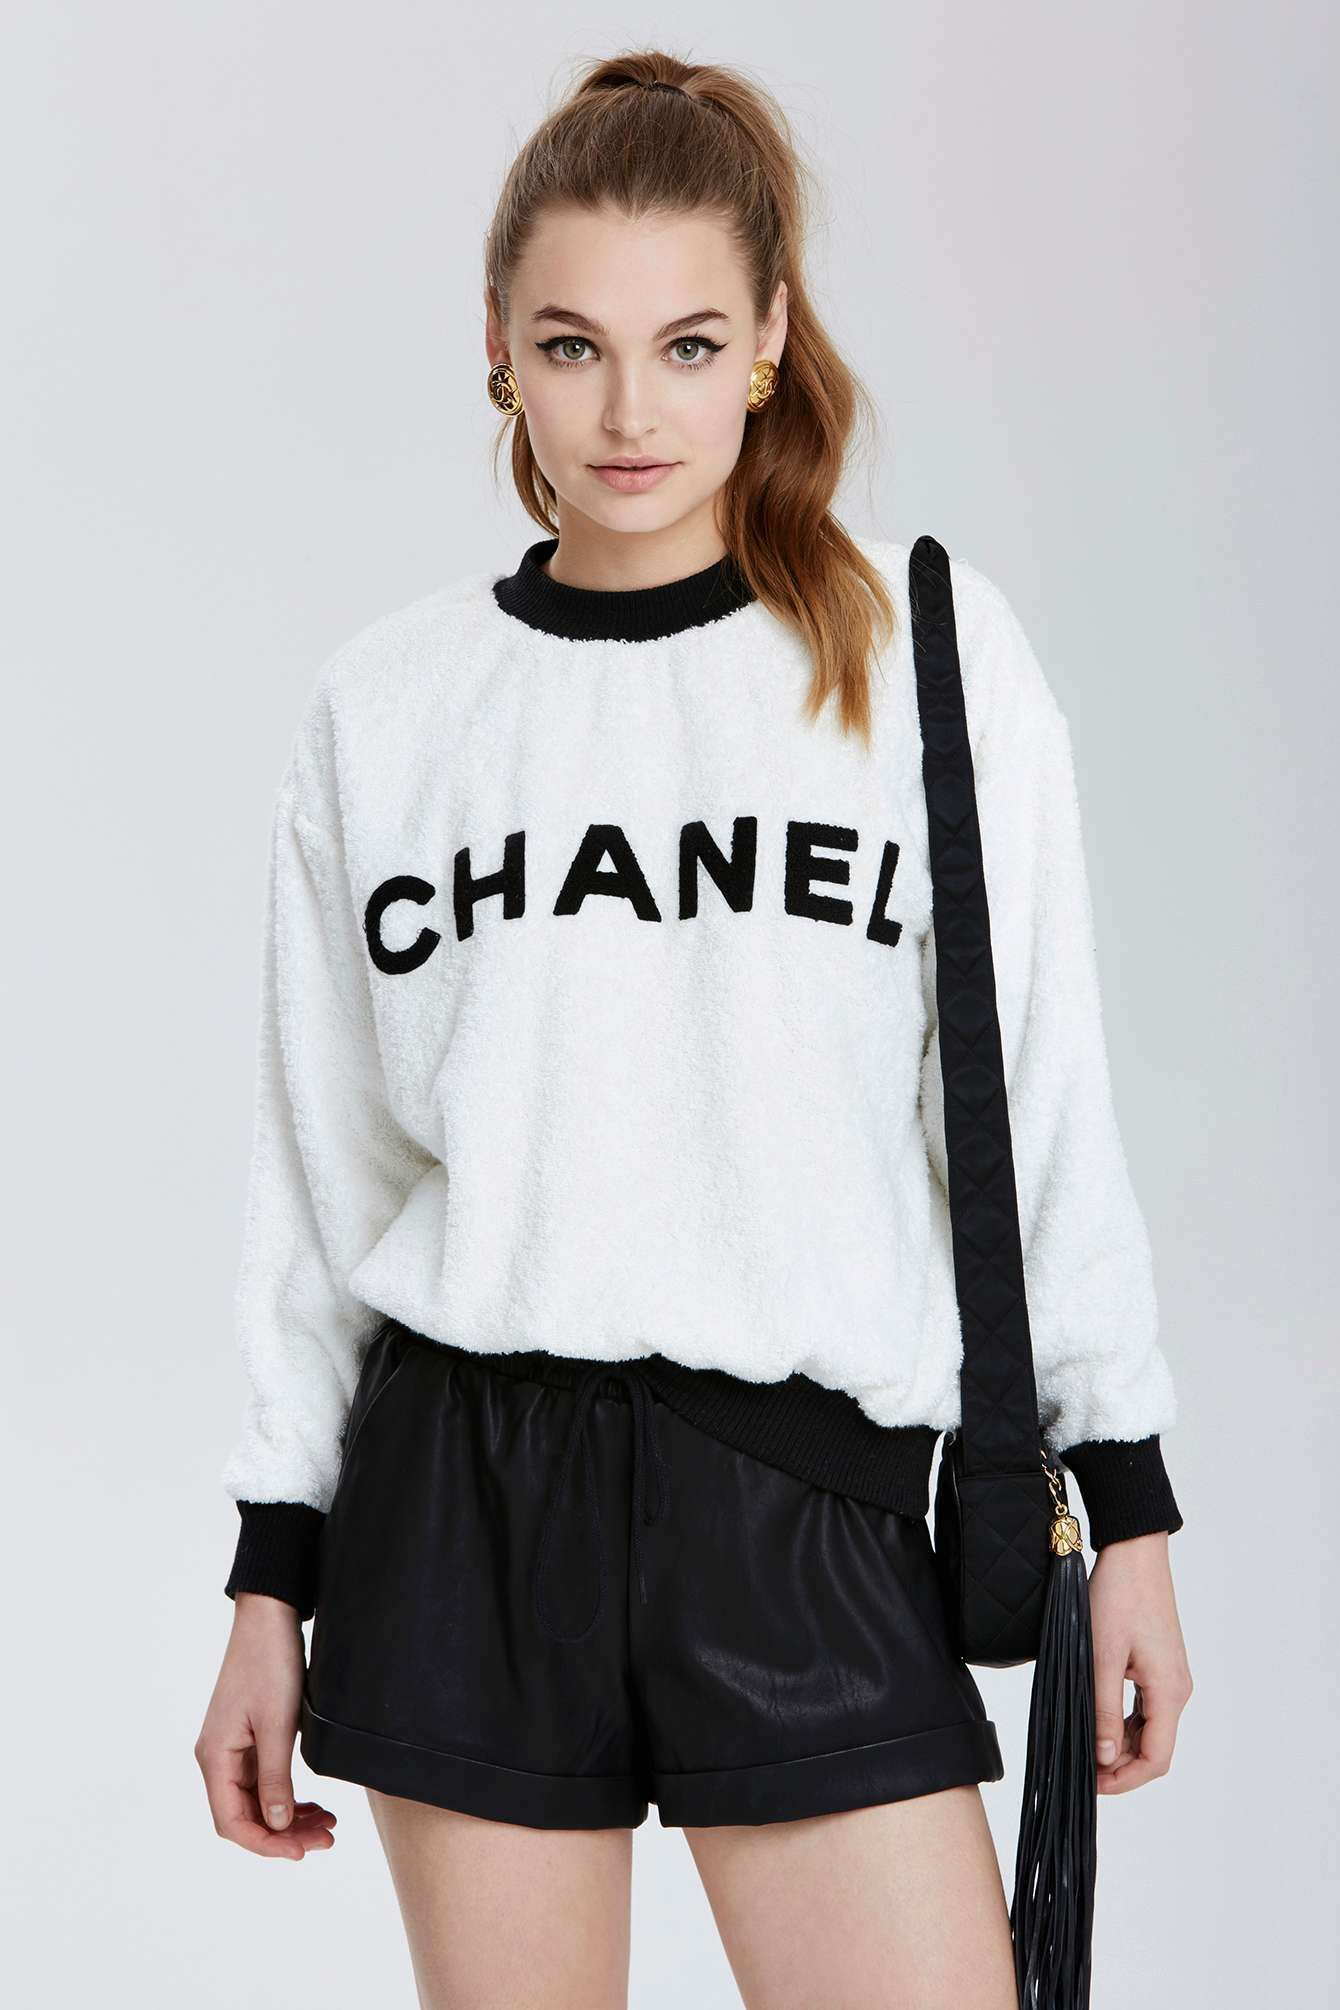 Vintage Chanel Dax Sweatshirt Chanel Sweatshirt Chanel Sweater Vintage Chanel